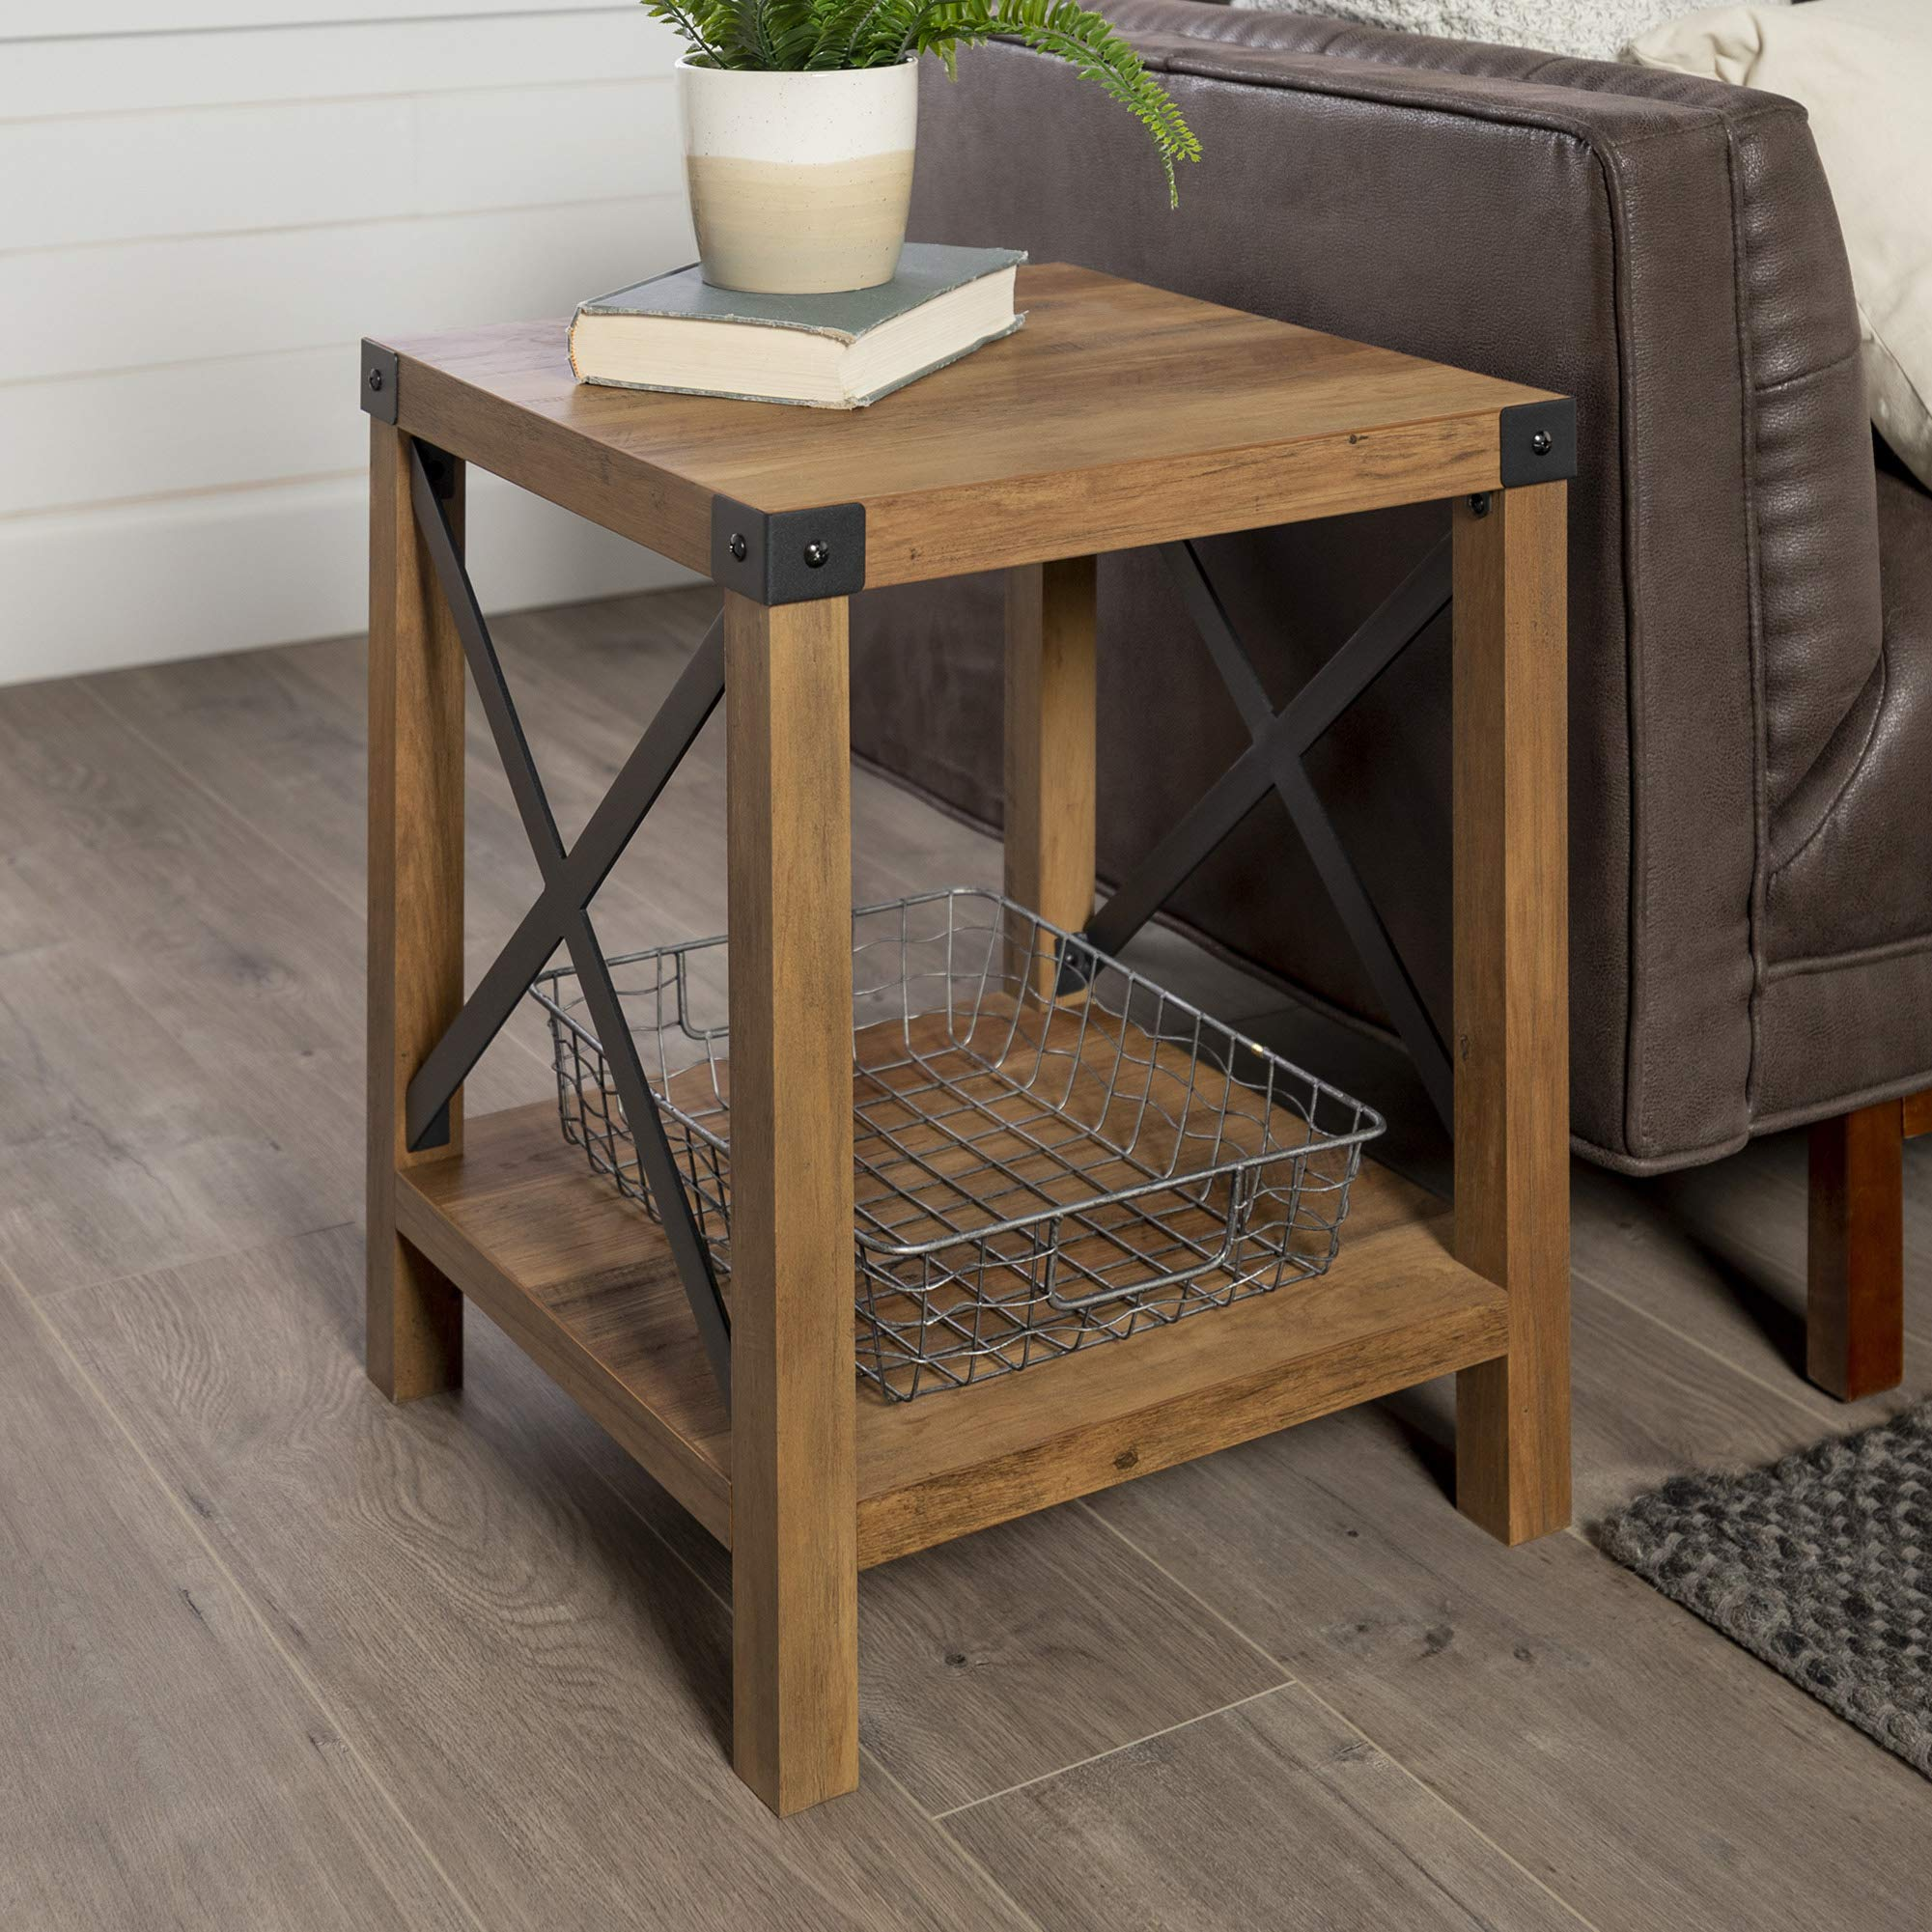 WE Furniture Rustic Modern Farmhouse Square Side End Accent Table Living Room, 18 Inch, Brown Reclaimed Barnwood by WE Furniture